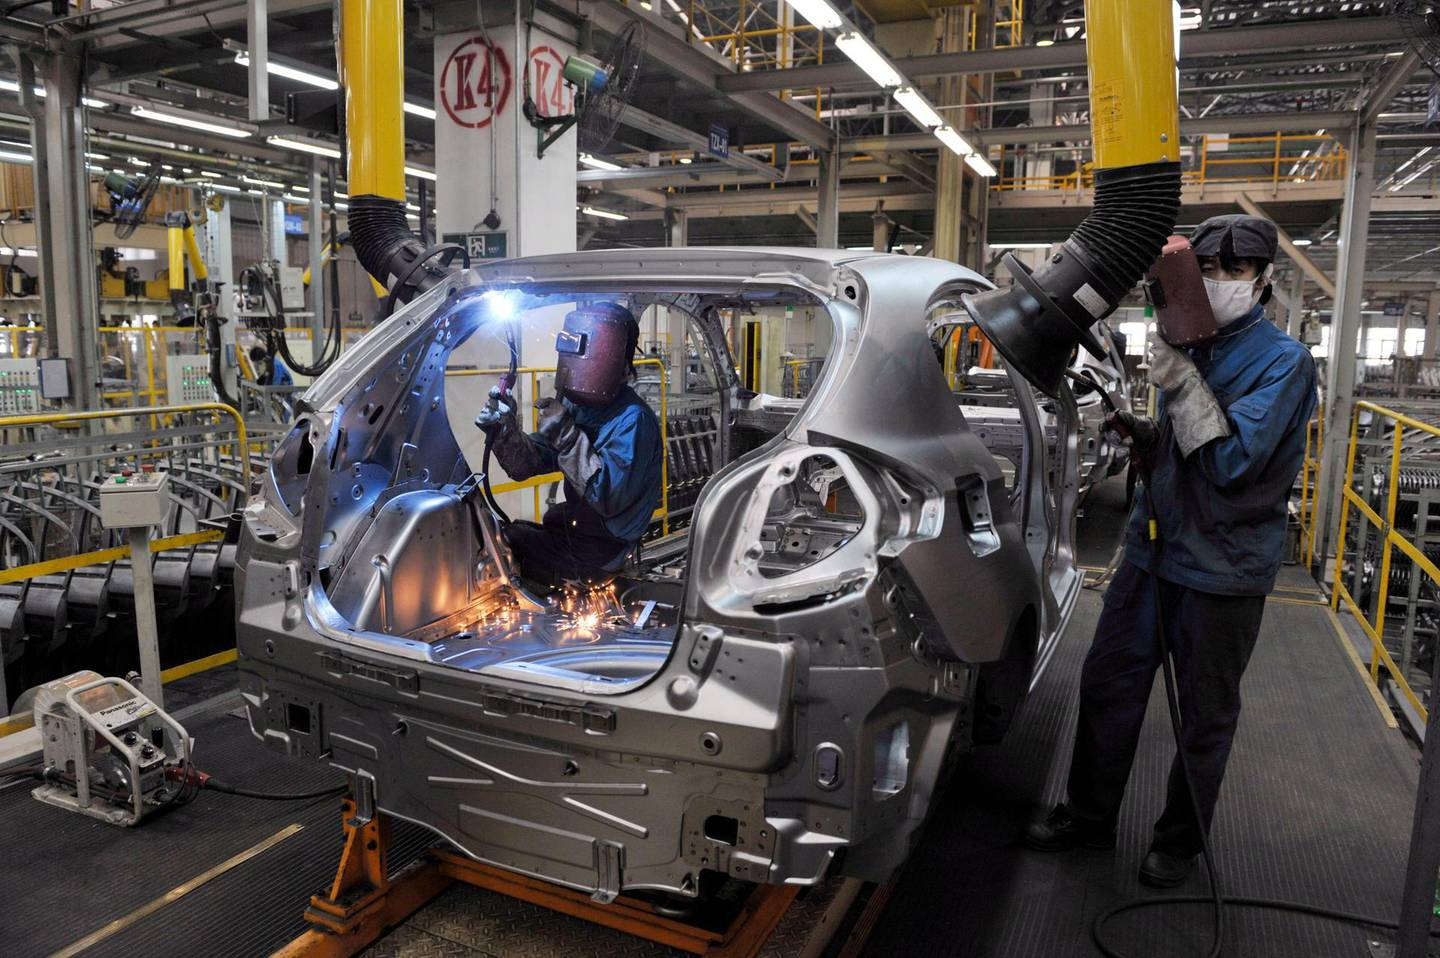 epa07086002 (FILE) - Production line workers build passenger cars at Brilliance Automotive, in Shenyang City, Liaoning Province, China, 13 May 2009 (reissued 11 October 2018). German carmaker BMW announced on 11 October 2018, that it will pay 3.6 billion euro to take control over its business in China, the Brilliance China Automotive Holdings. Under the new deal -- which is subject to regulatory and shareholder approval and expected to close in 2022, when China will relax ownership rules for car manufacturing operations in the country -- BMW will increase its stake from 50 to 75 percent, media reported.  EPA/MARK *** Local Caption *** 01728527